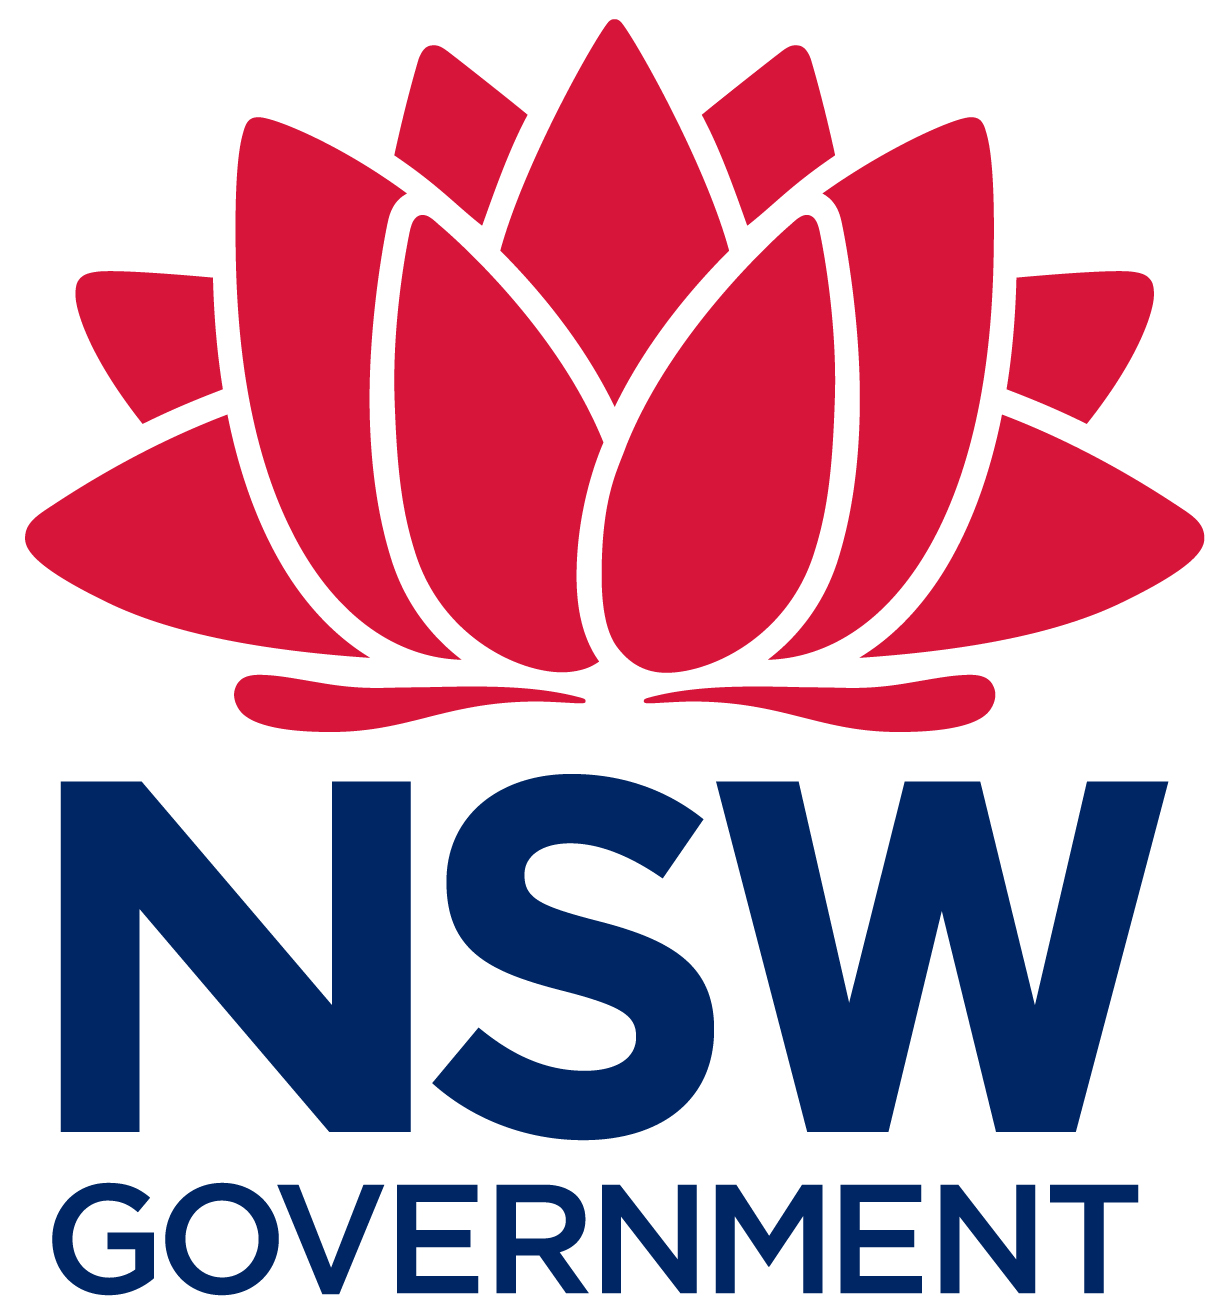 Word Travels is supported by the NSW Government through Create NSW.